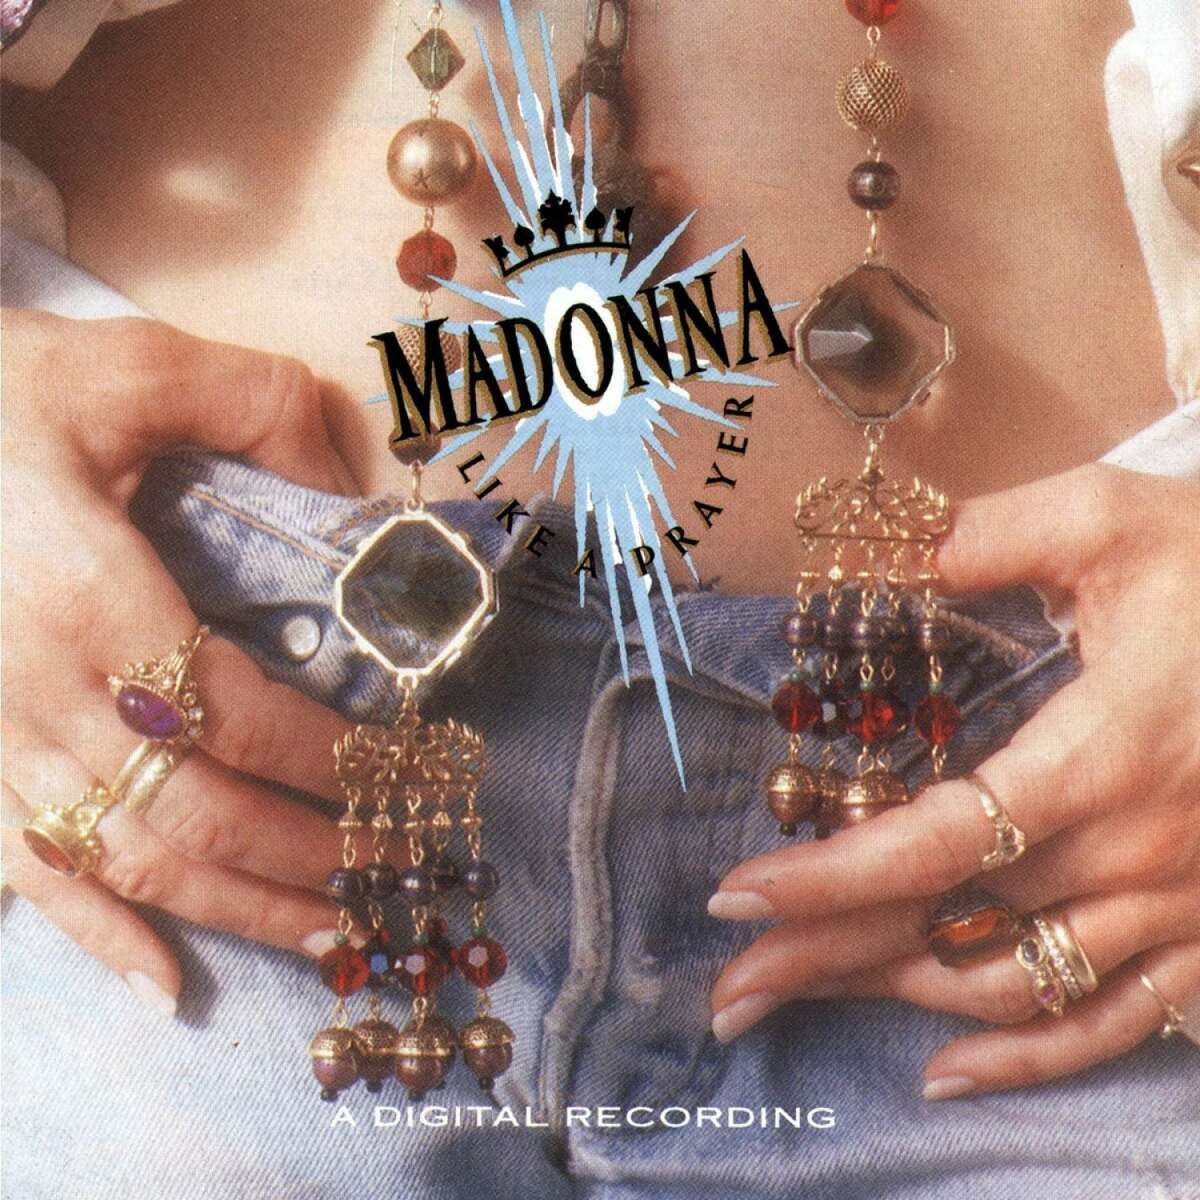 'Like a Prayer' transformed Madonna from pop starlet to serious artist.